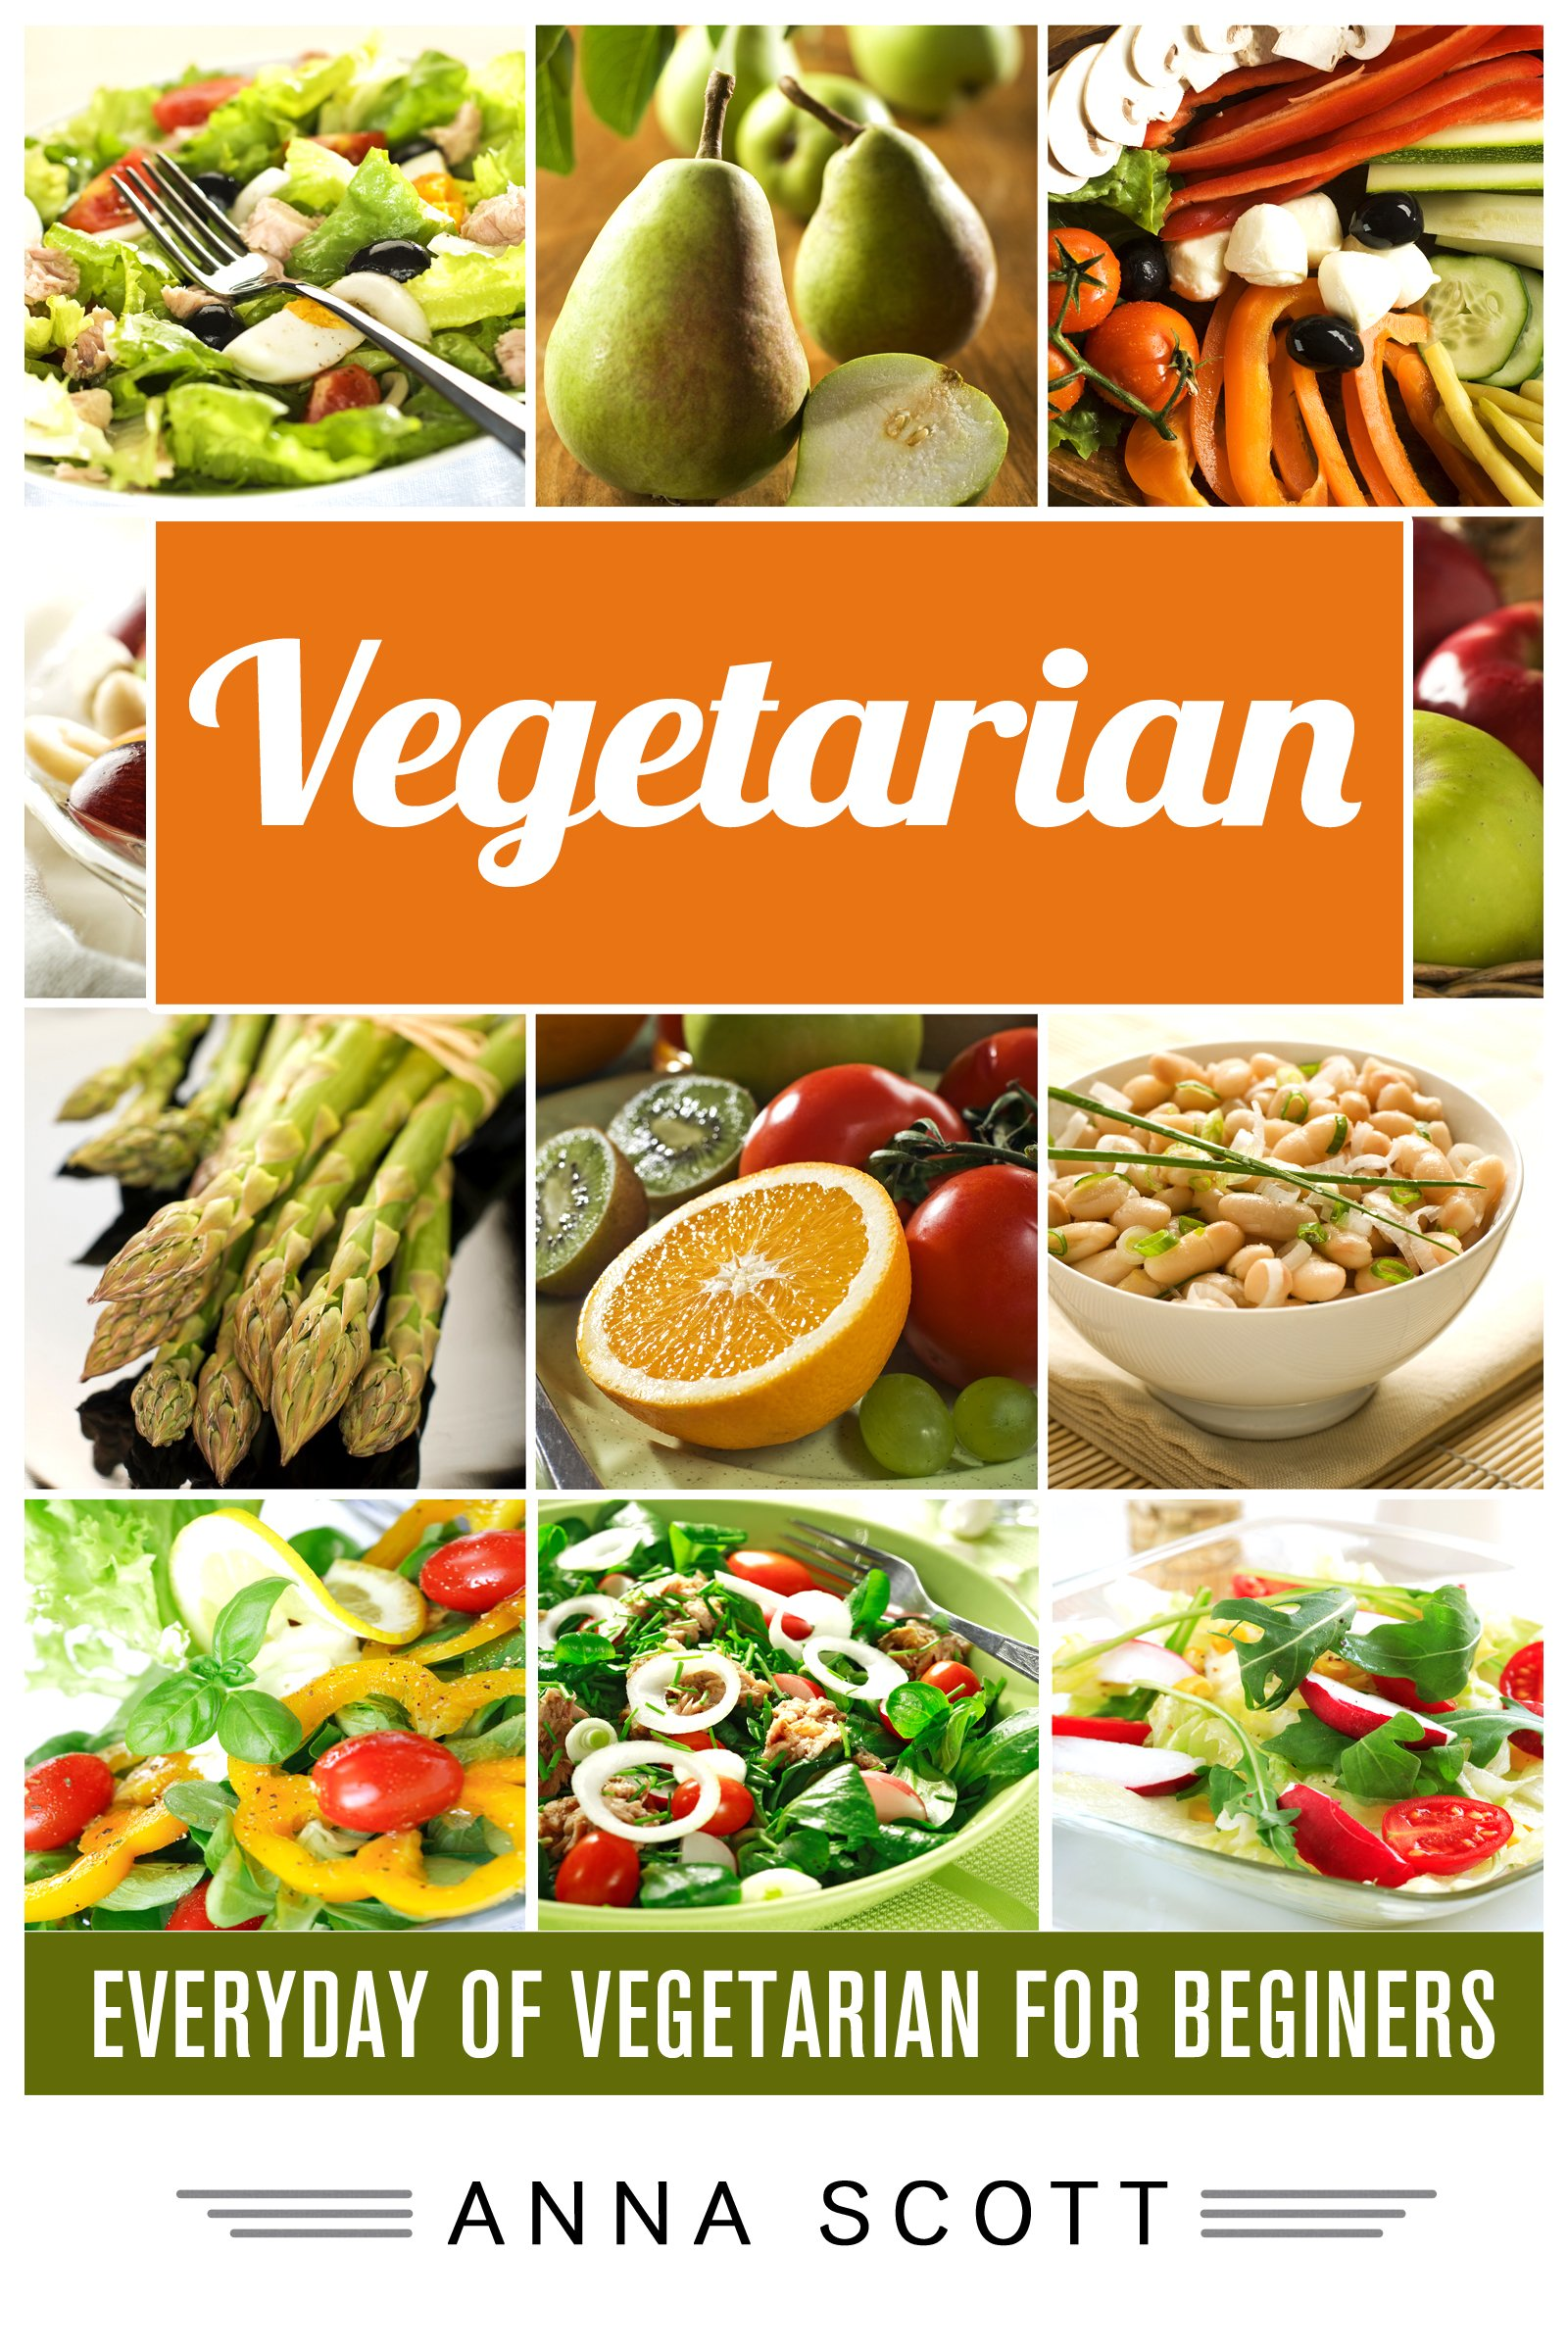 Vegetarian  Everyday   Vegetarian For Beginners Vegetarian Paleo Vegetarian Health Recipes Vegetarian Weight Loss Recipes Vegetarian Weight Loss Vegetarian ... Food For Everyday Book 2   English Edition